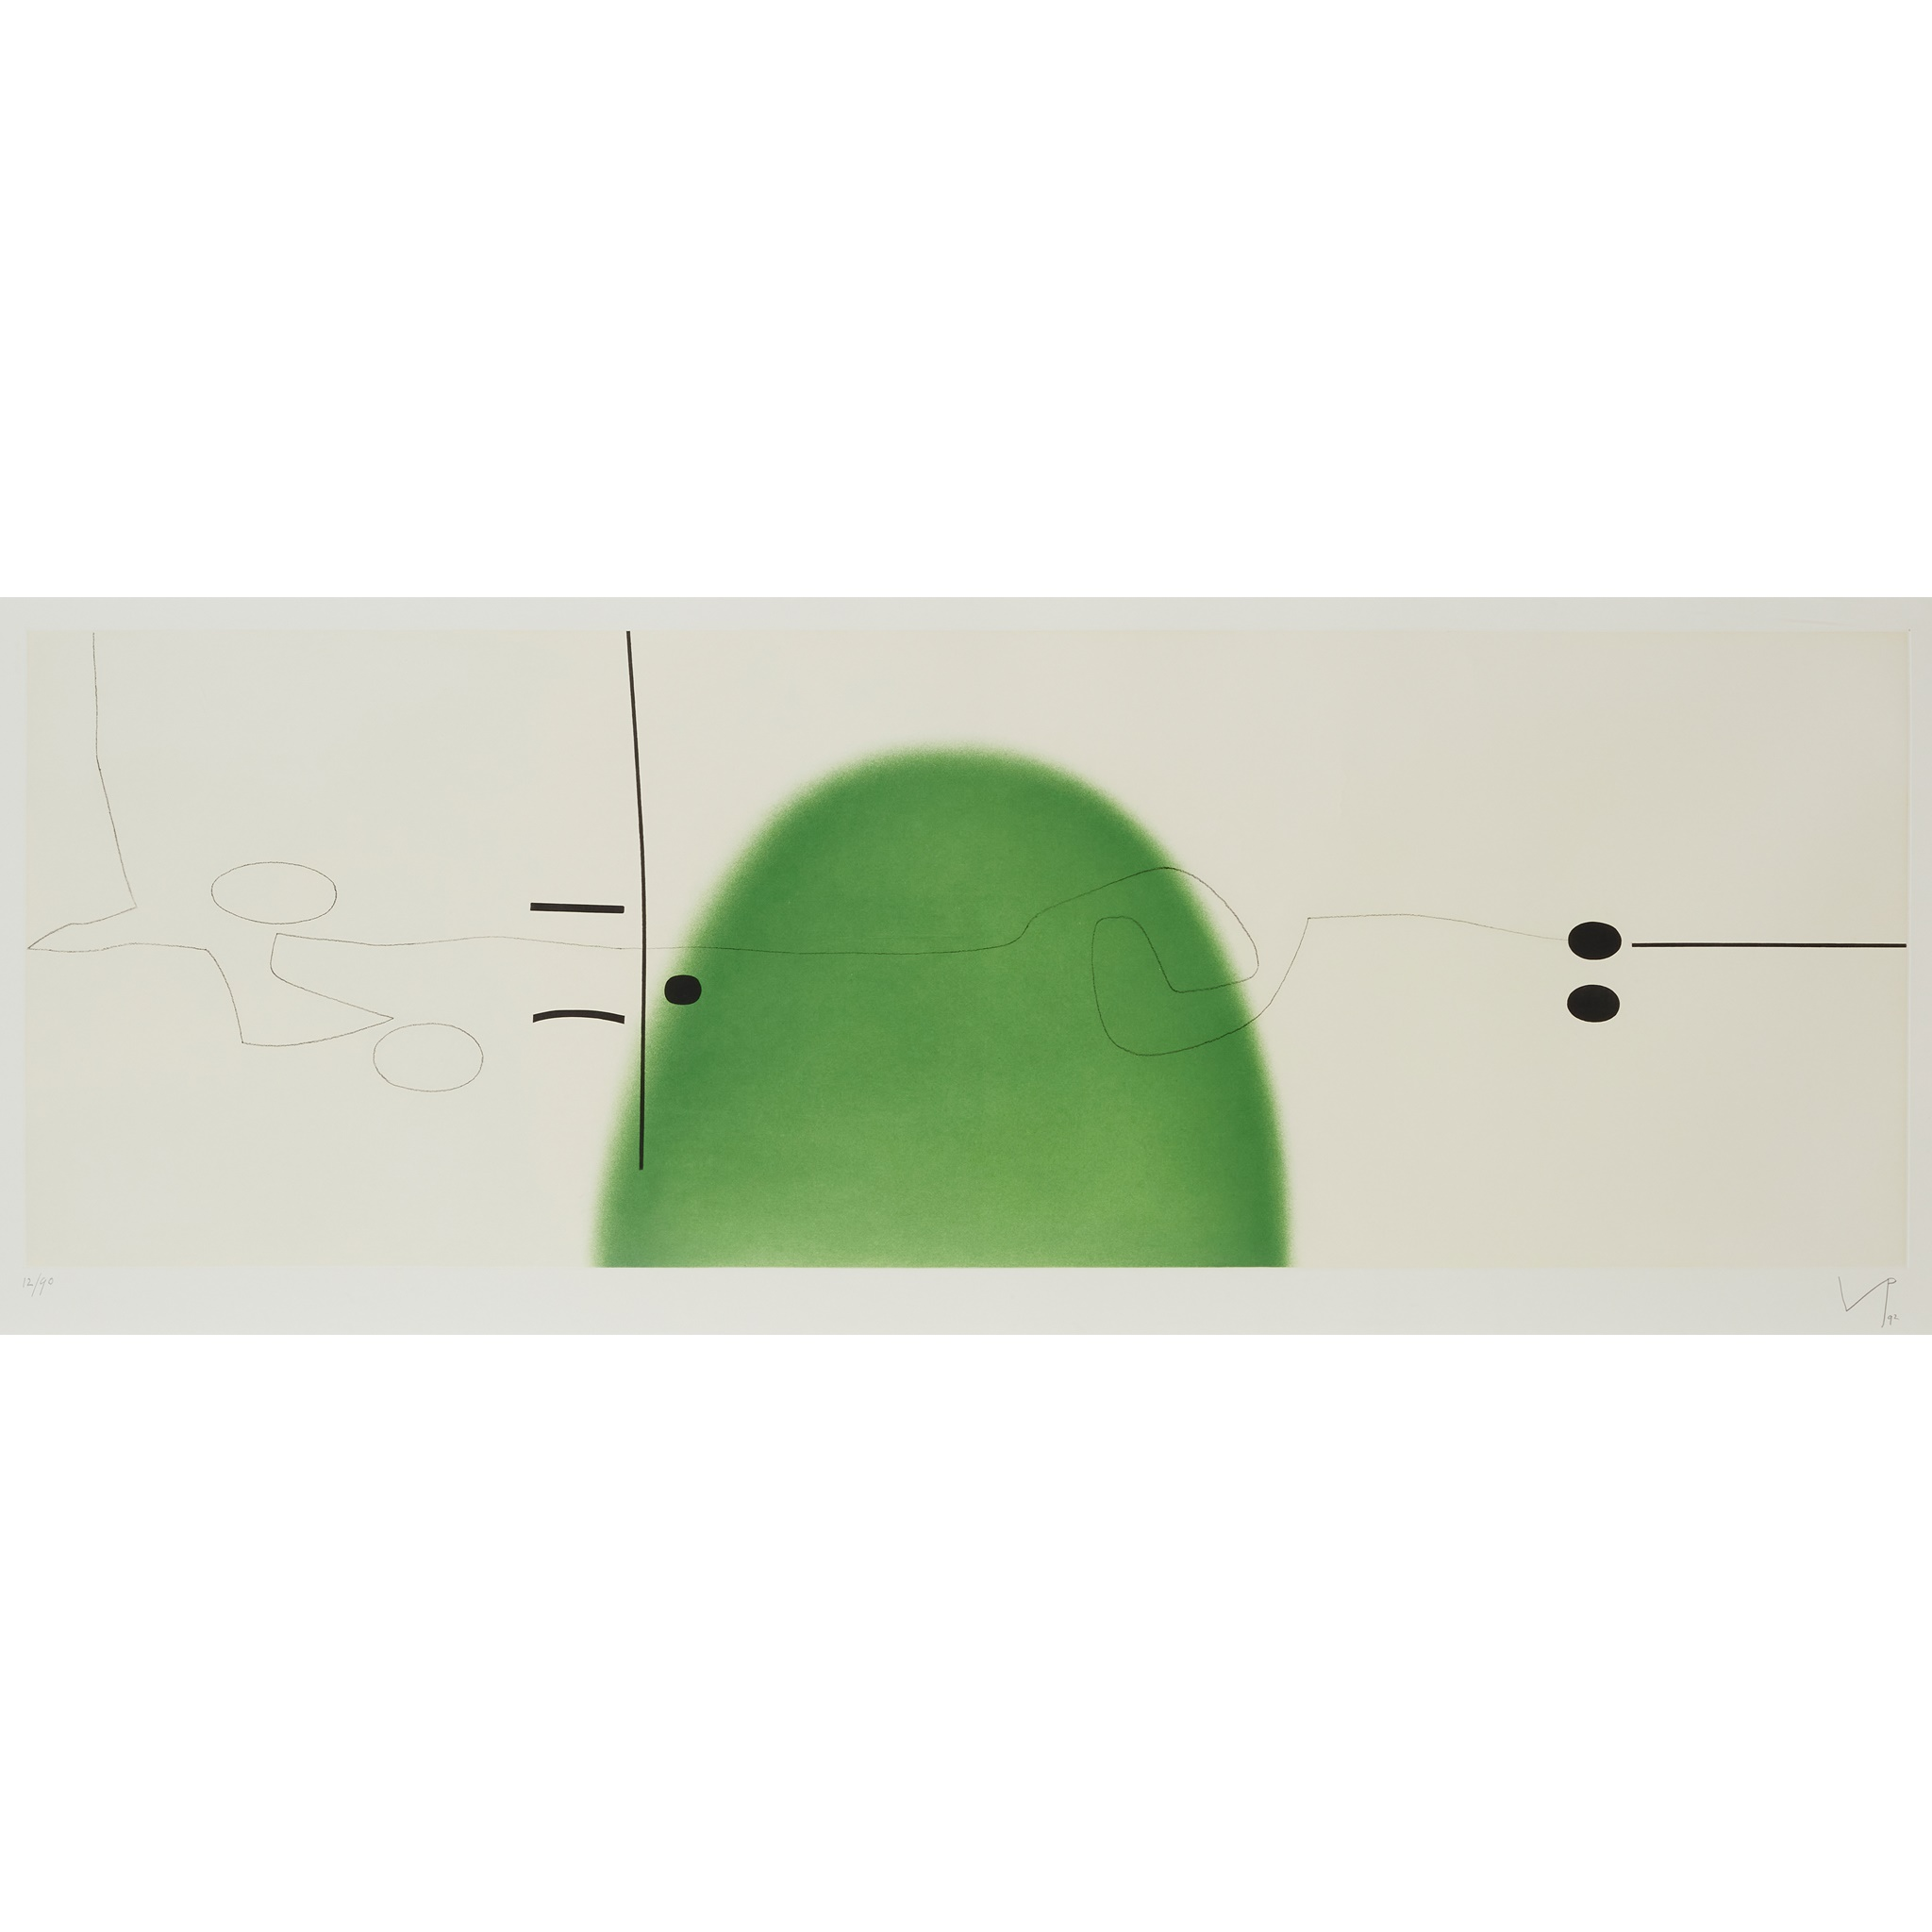 § VICTOR PASMORE C.B.E., C.H. (BRITISH 1908-1998) WORLD IN SPACE AND TIME II - 1992